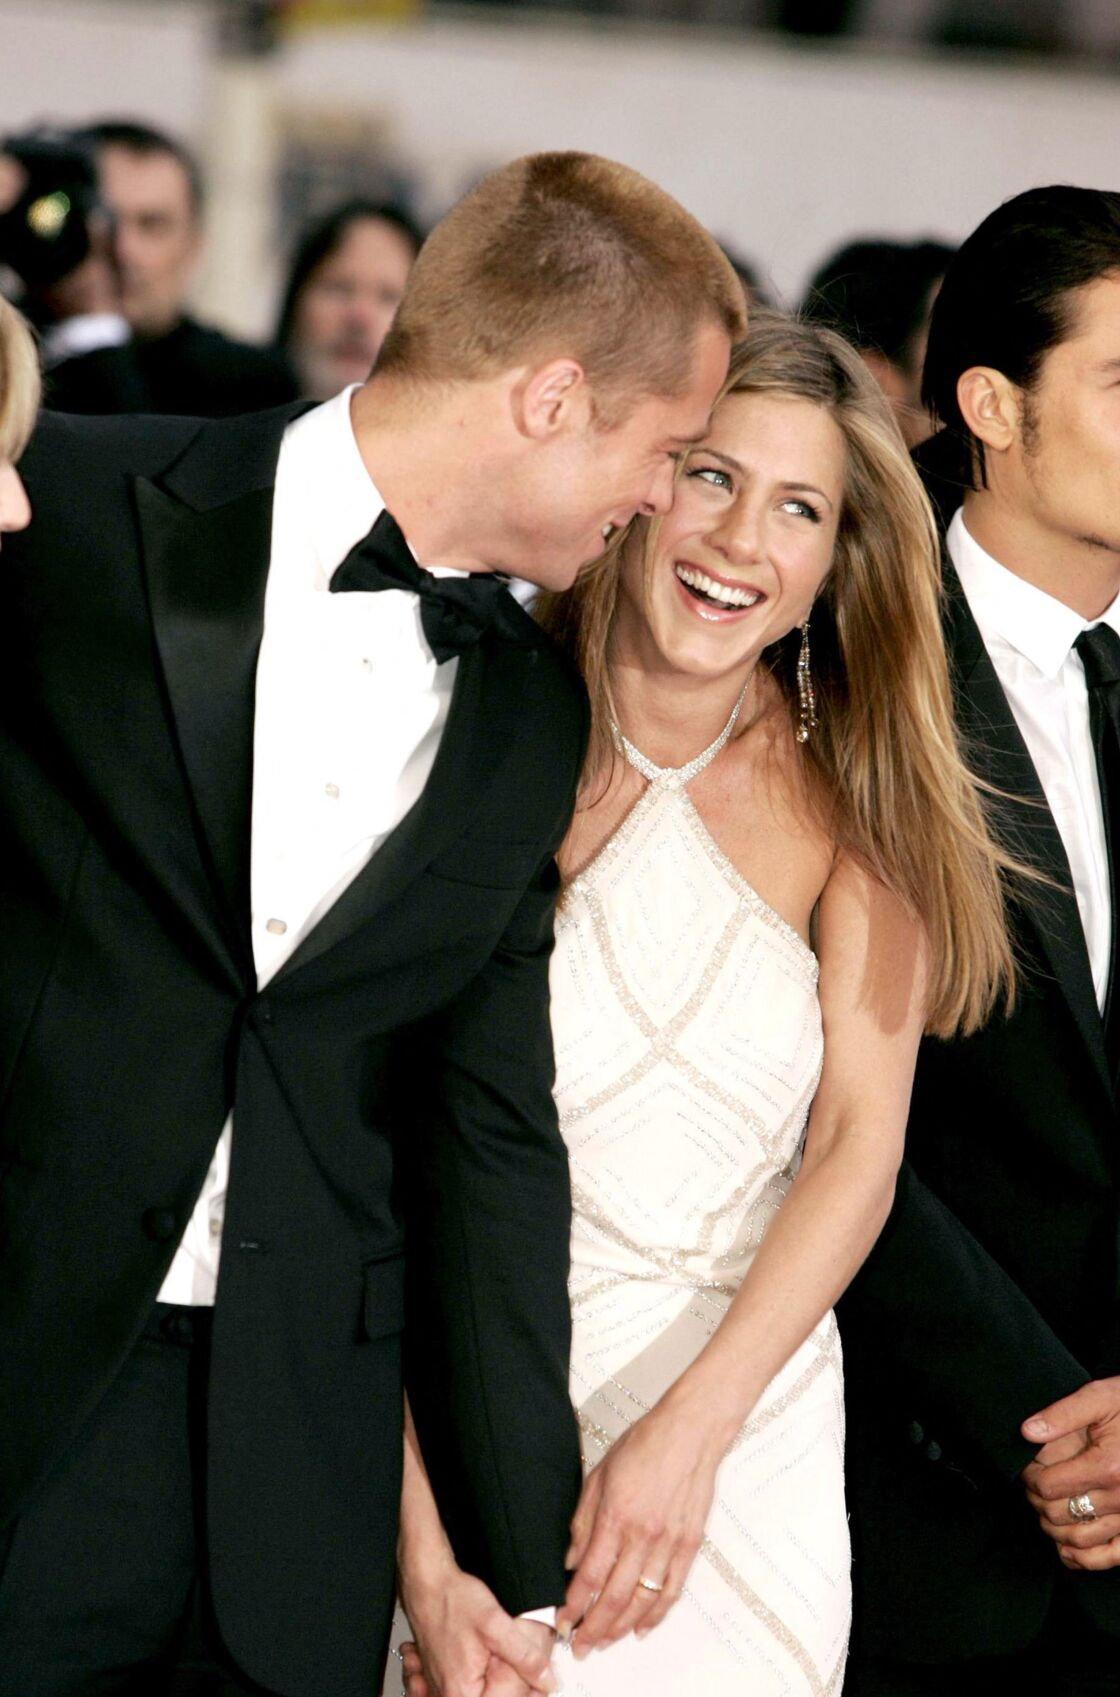 In Cannes in 2004, Brad Pitt does not let anything show through the arm of Jennifer Aniston.